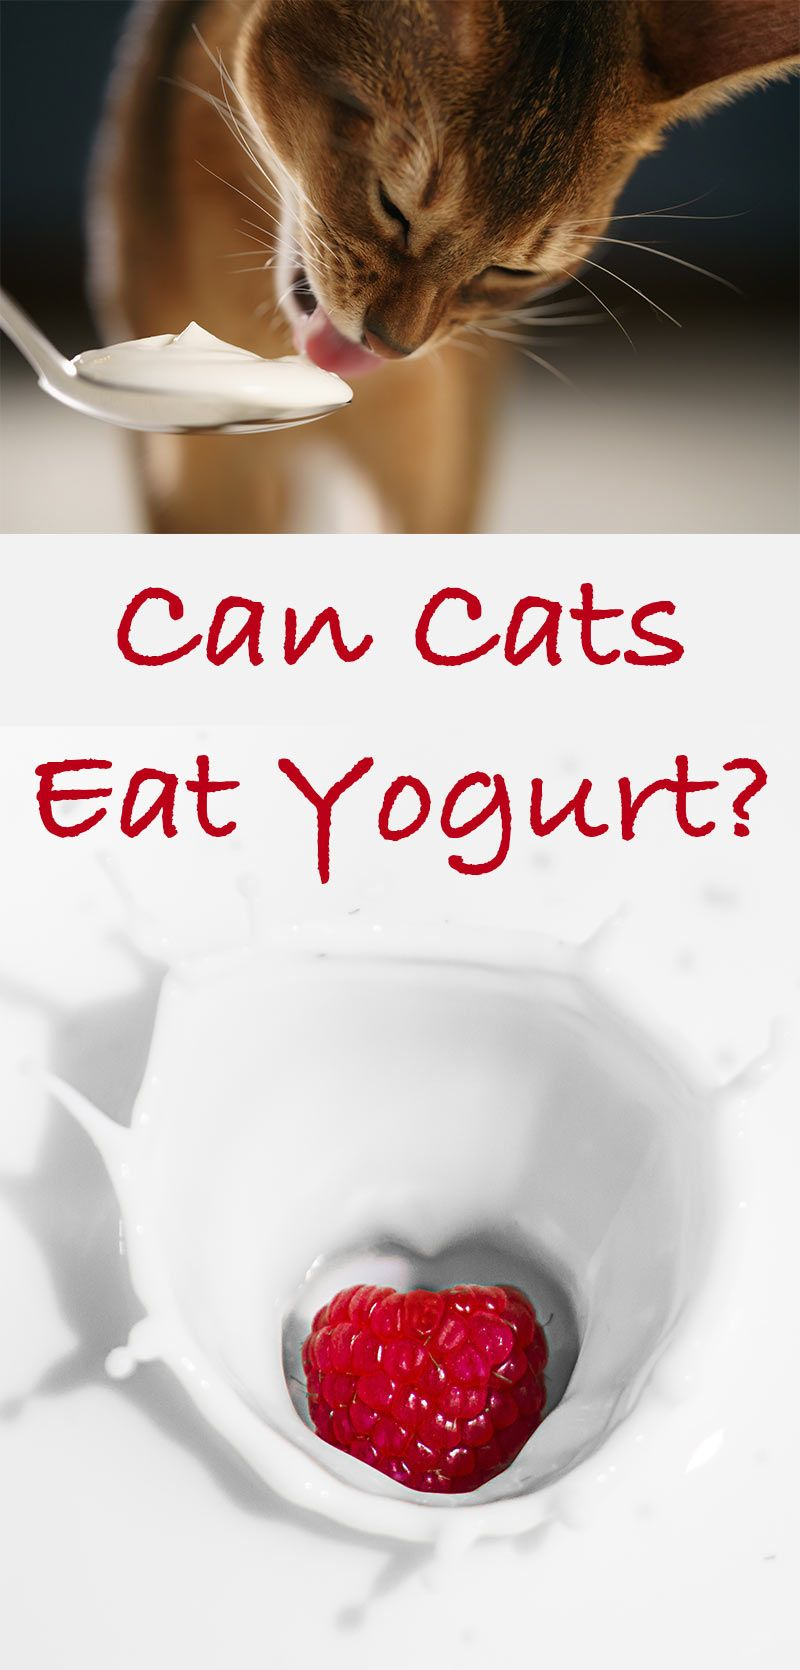 Can Cats Eat Yogurt? A Cat Food Safety Guide From Cat